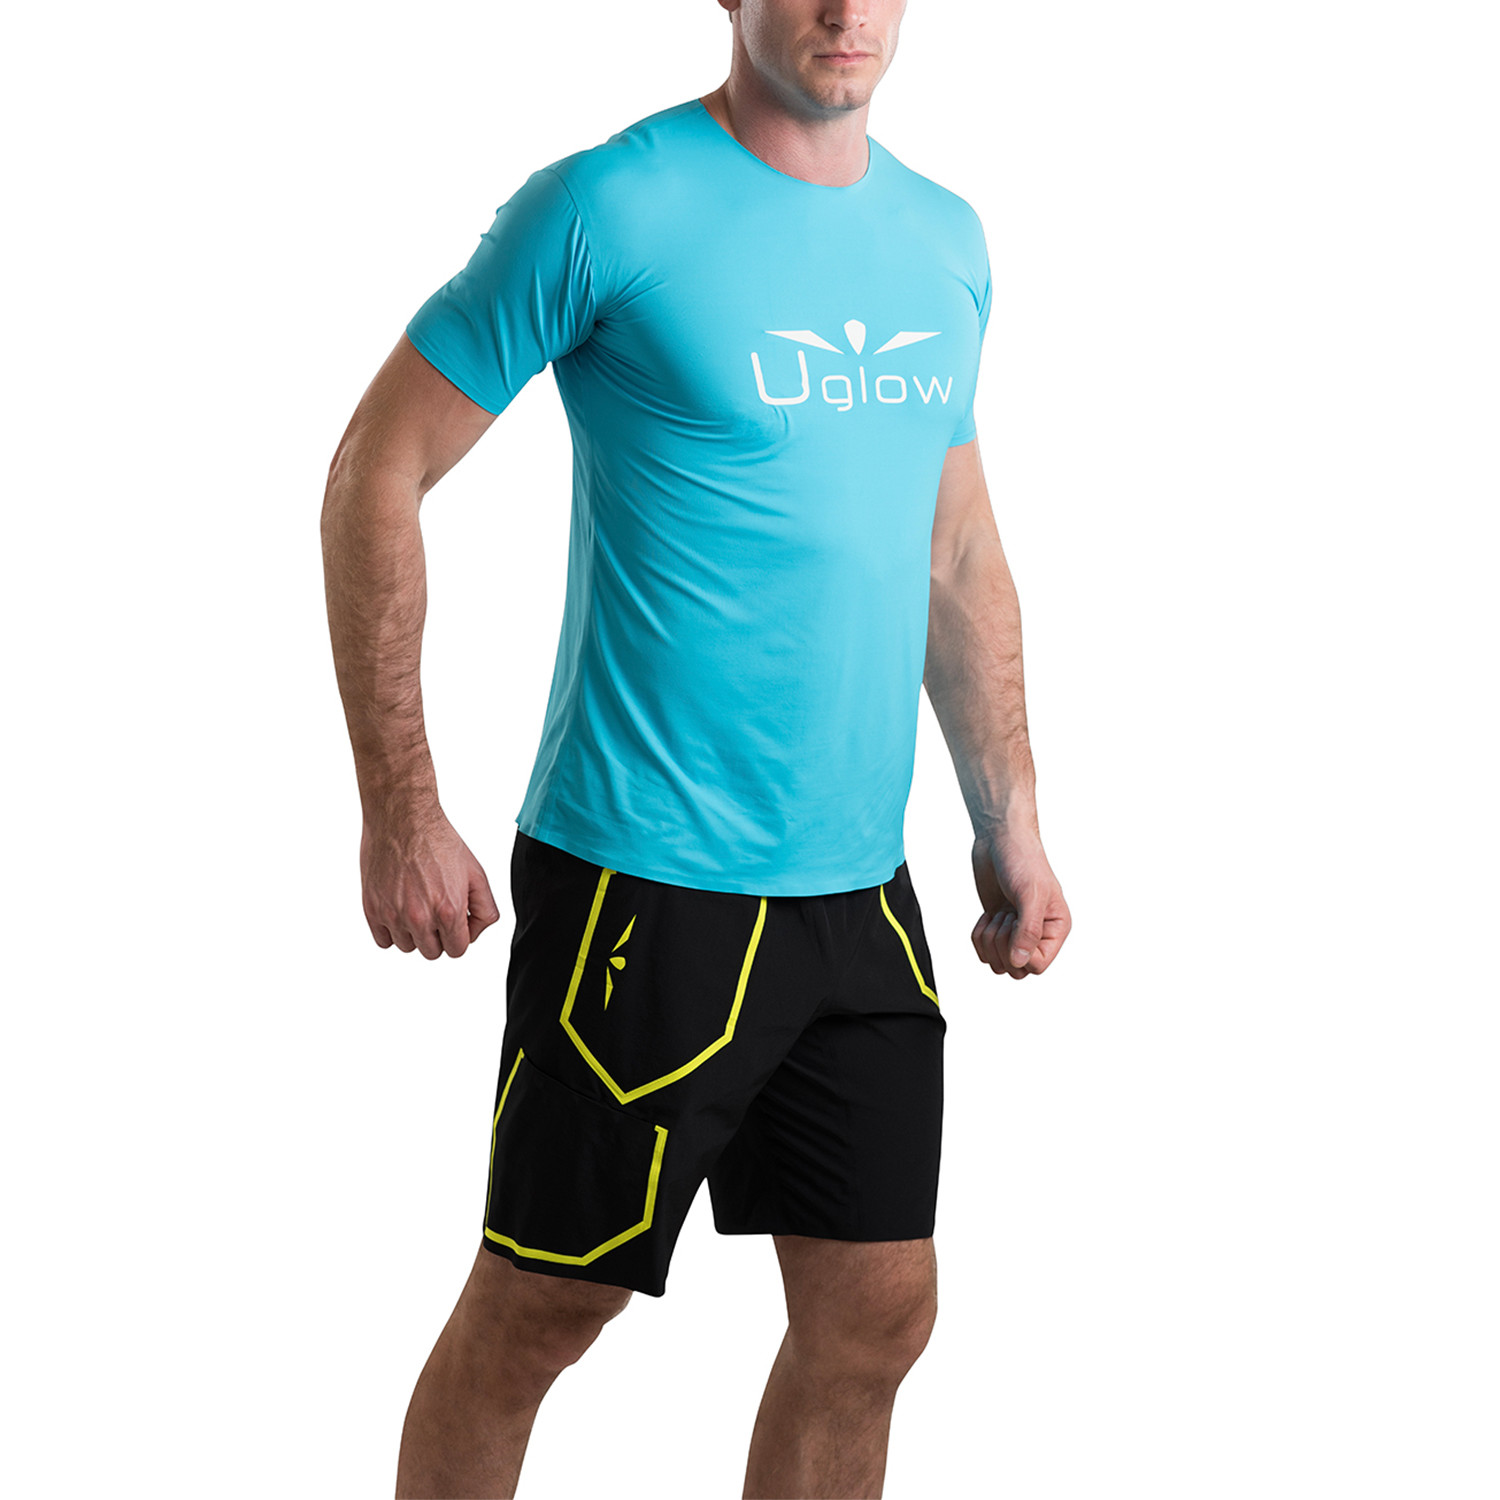 0d1221a26 Base Tee    Sky Blue (S) - Uglow - Touch of Modern